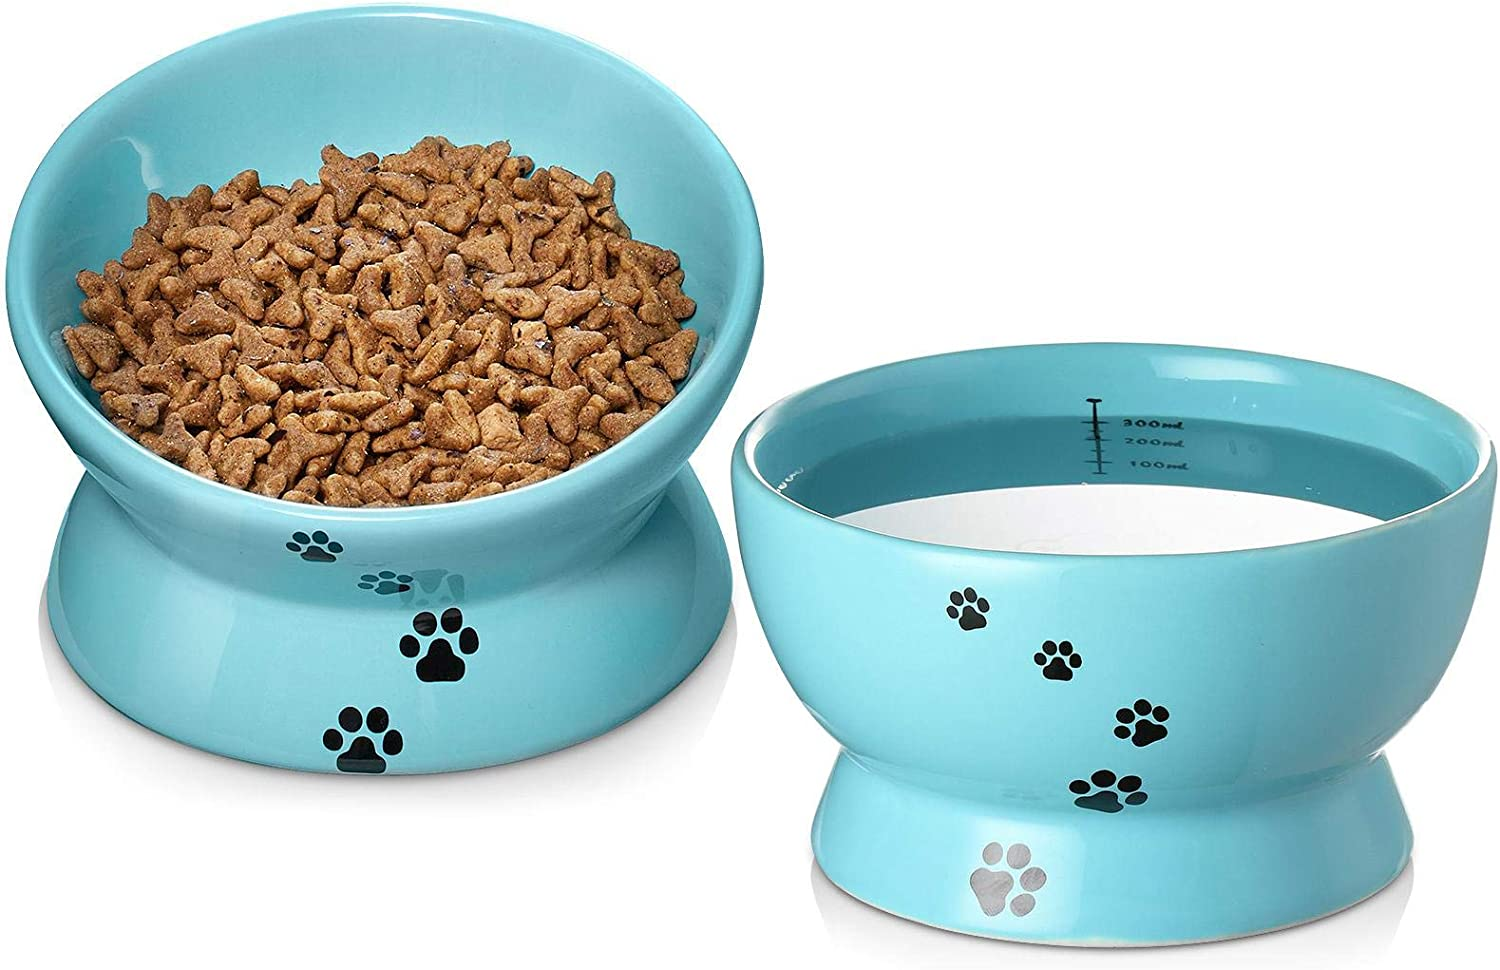 Y YHY Raised Cat Food and Water Bowl Set, Tilted Elevated Cat Food Bowls No Spill, Ceramic Cat Food Feeder Bowl Collection, Pet Bowl for Flat-Faced Cats and Small Dogs, Set of 2, Blue